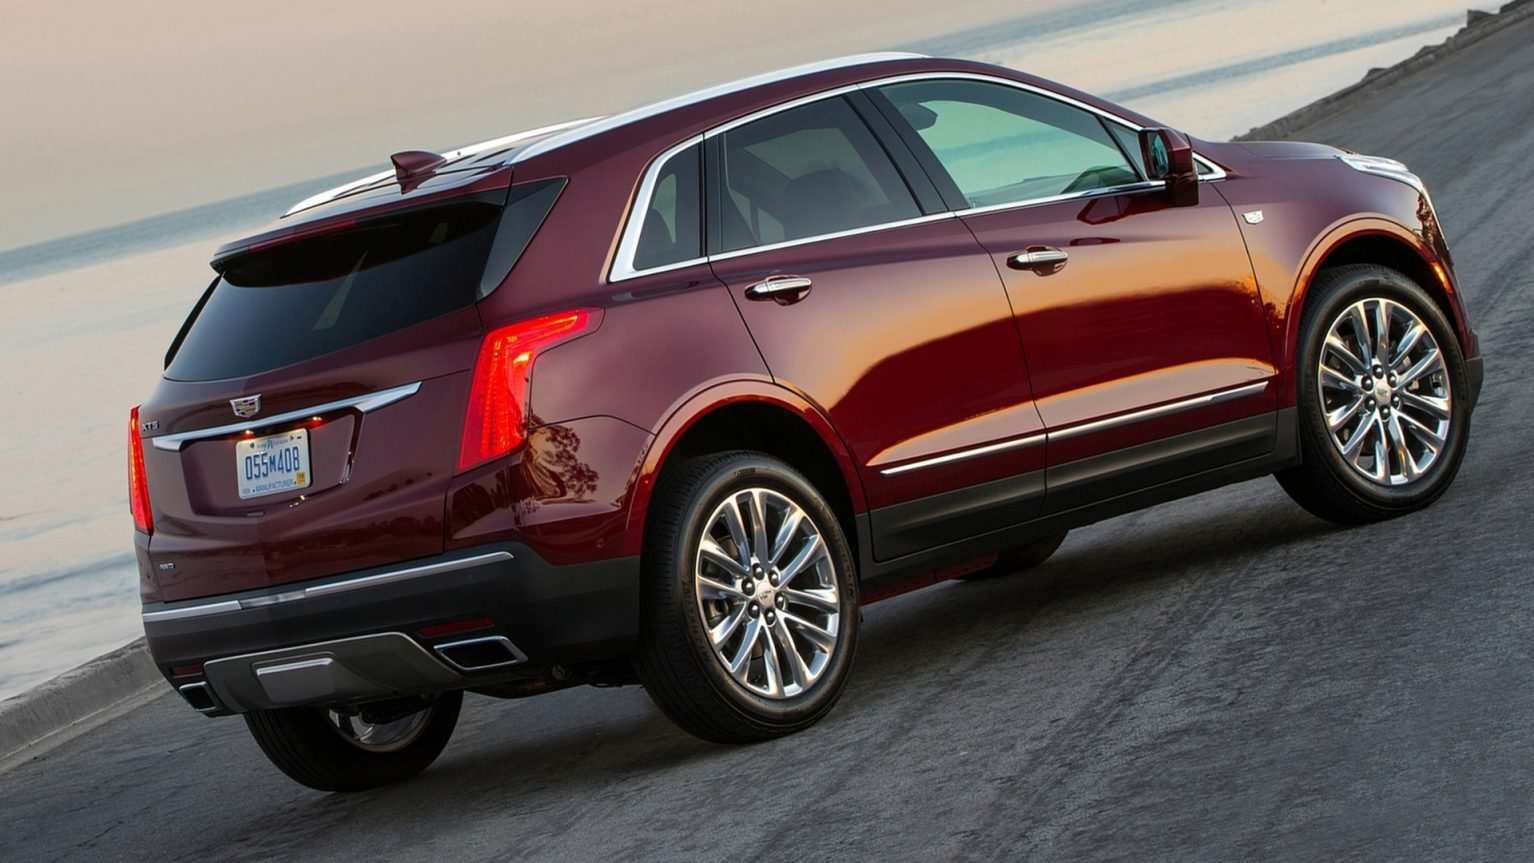 21 New 2019 Cadillac SRX Price Design And Review